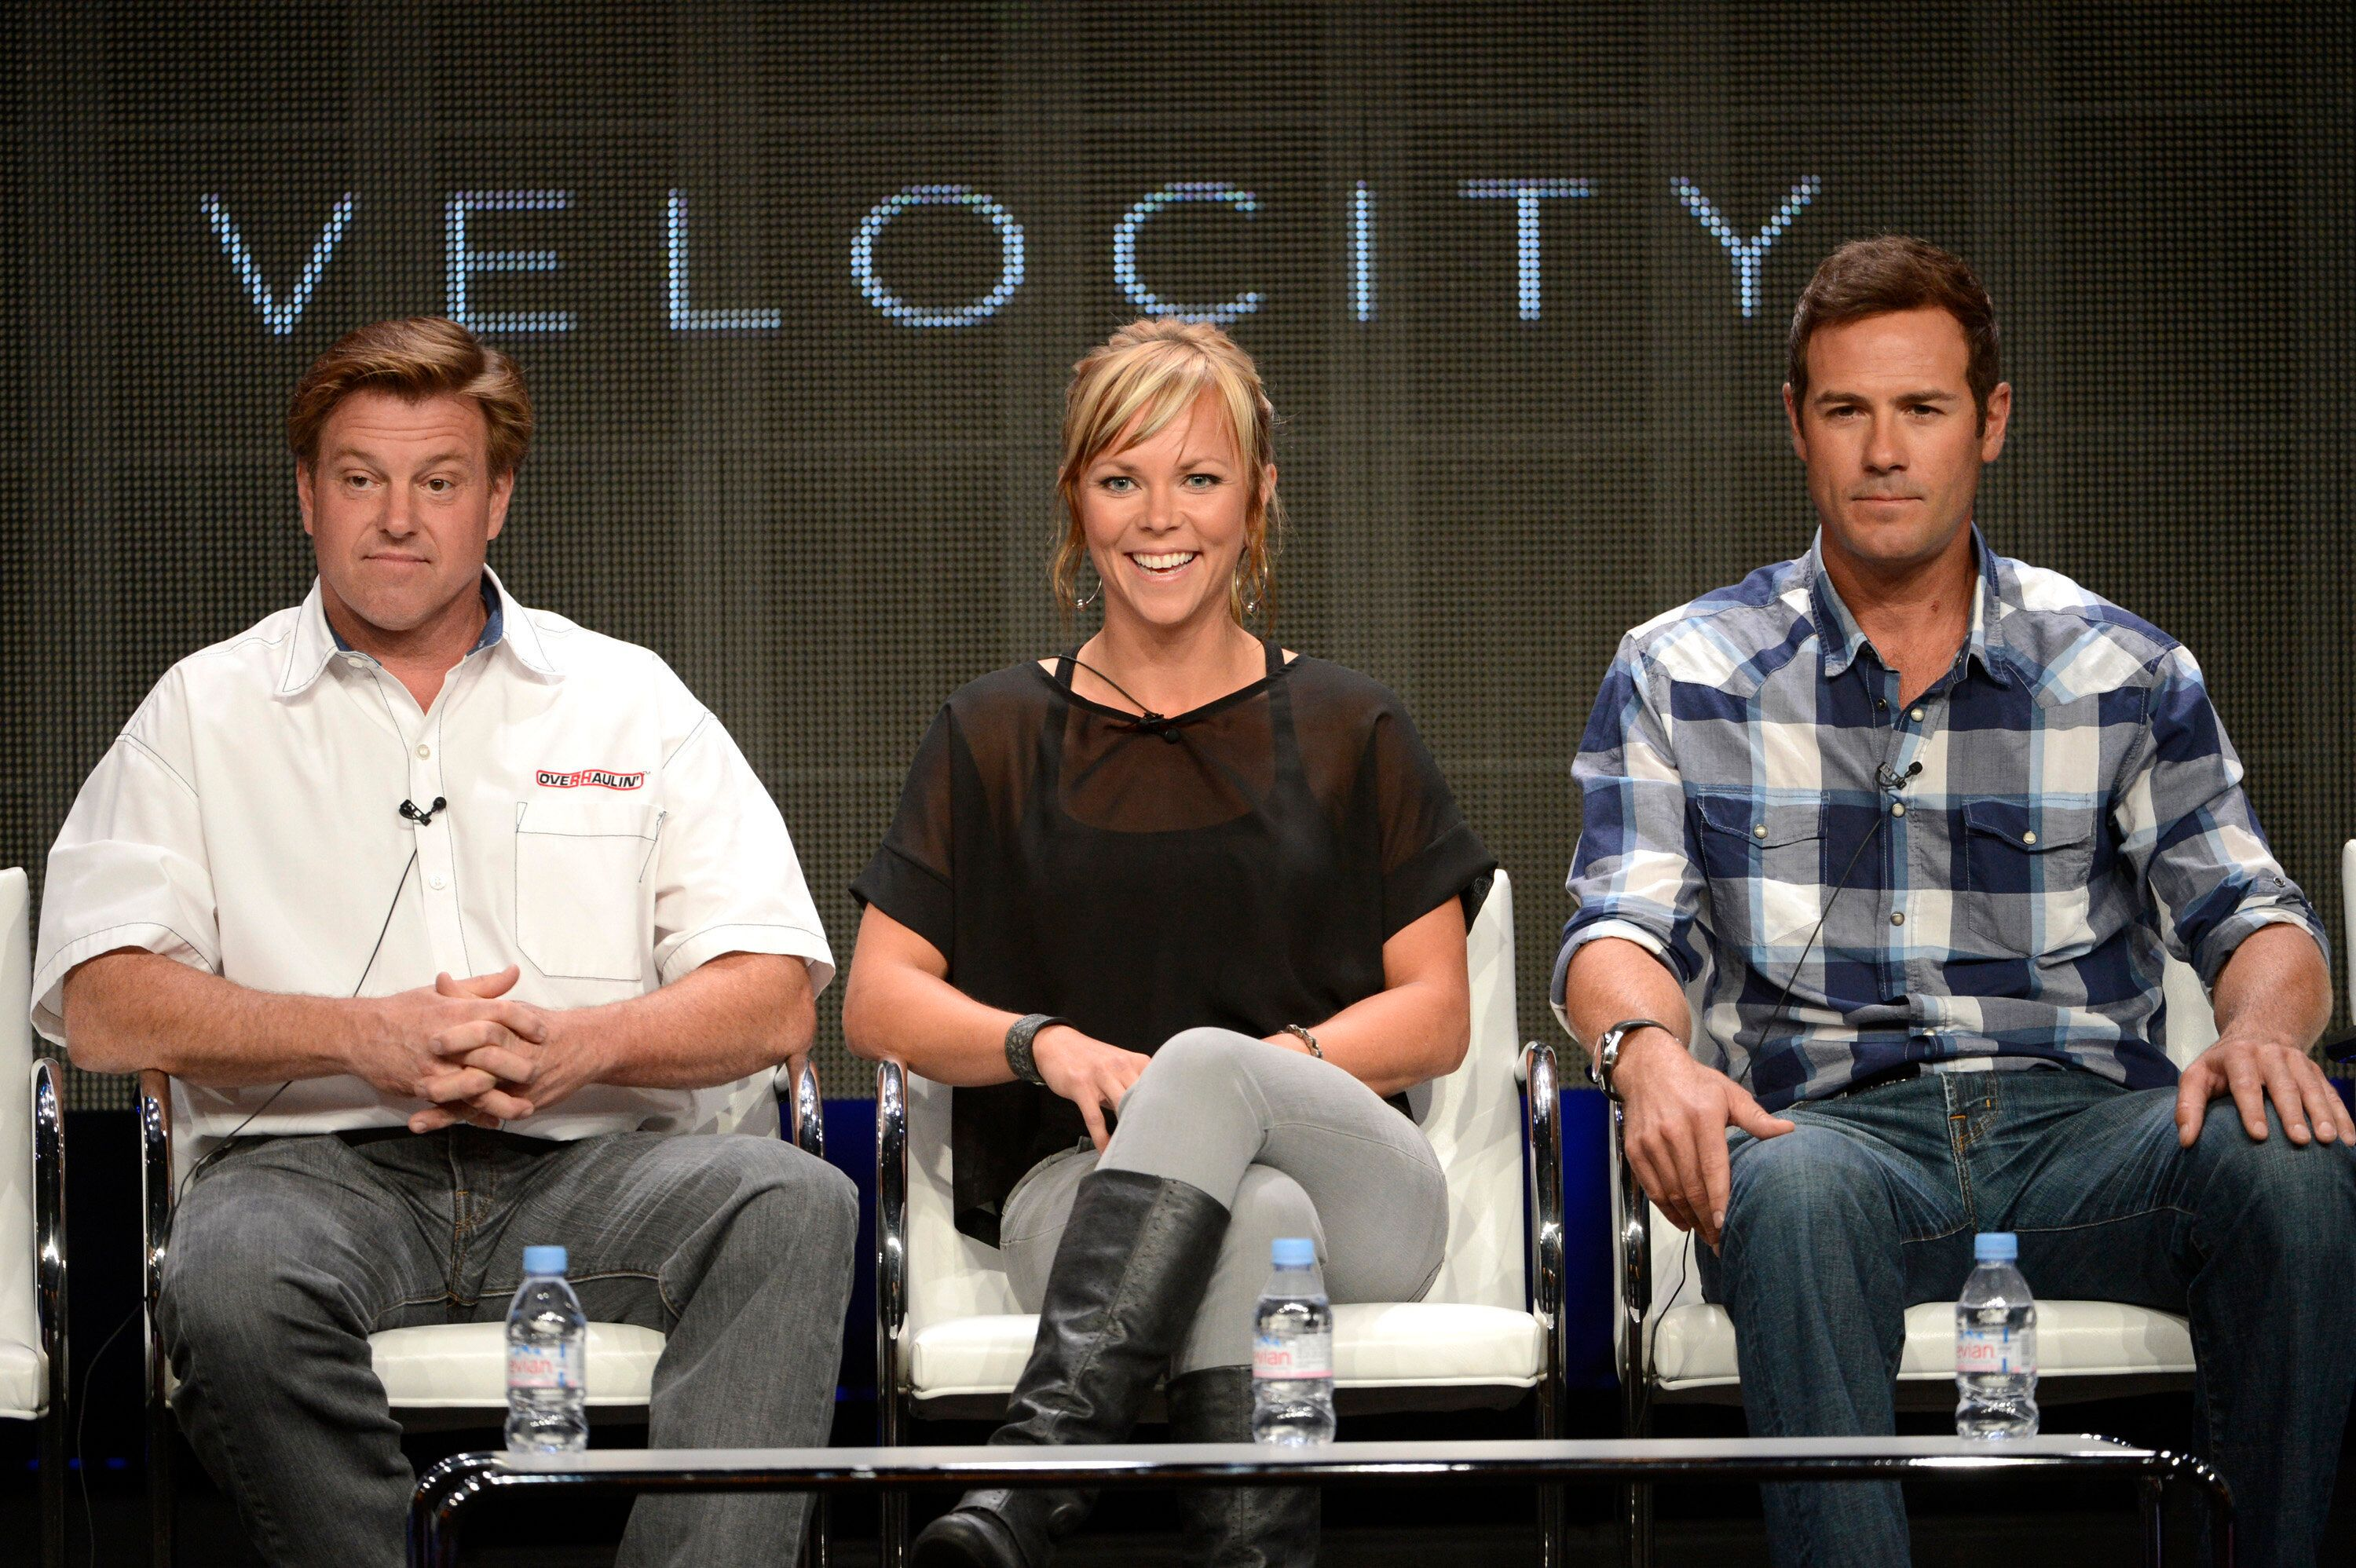 """Host Chip Foose (left) Jessi Combs and Chris Jacobs participate in a panel on the cable TV program """"Overhaulin'"""" during the T"""